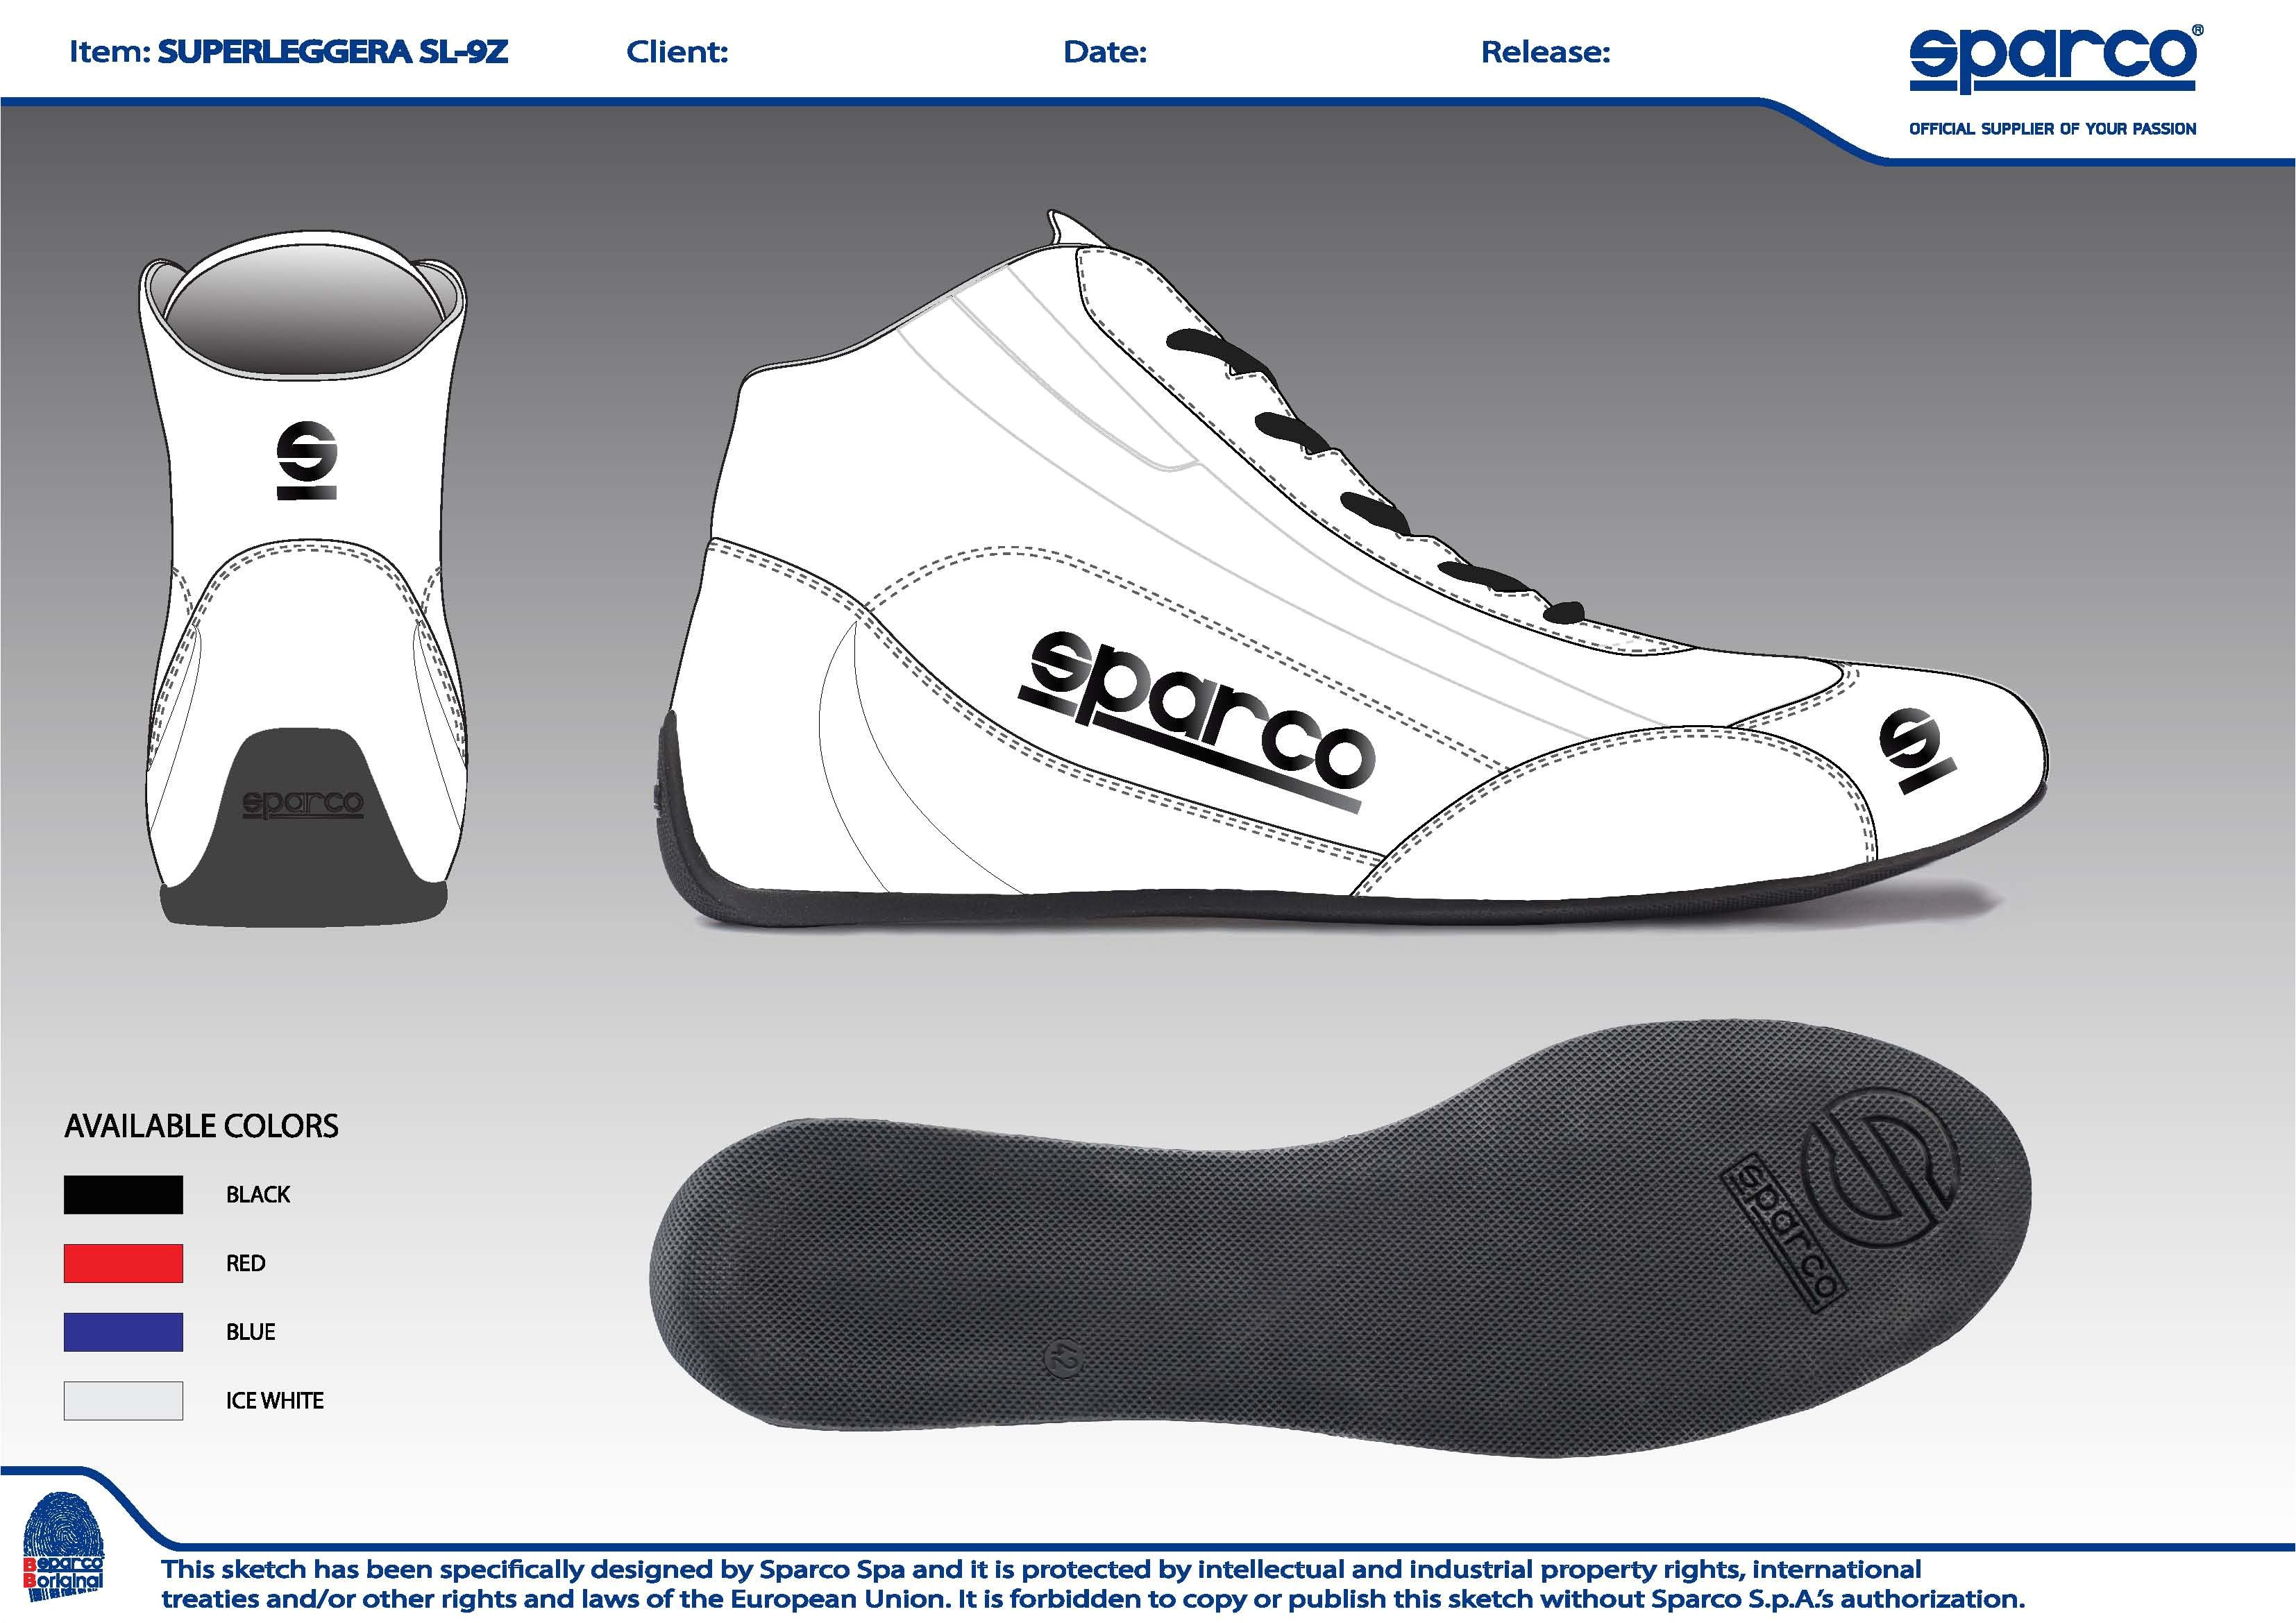 Sparco Templates General Lucas ordonez